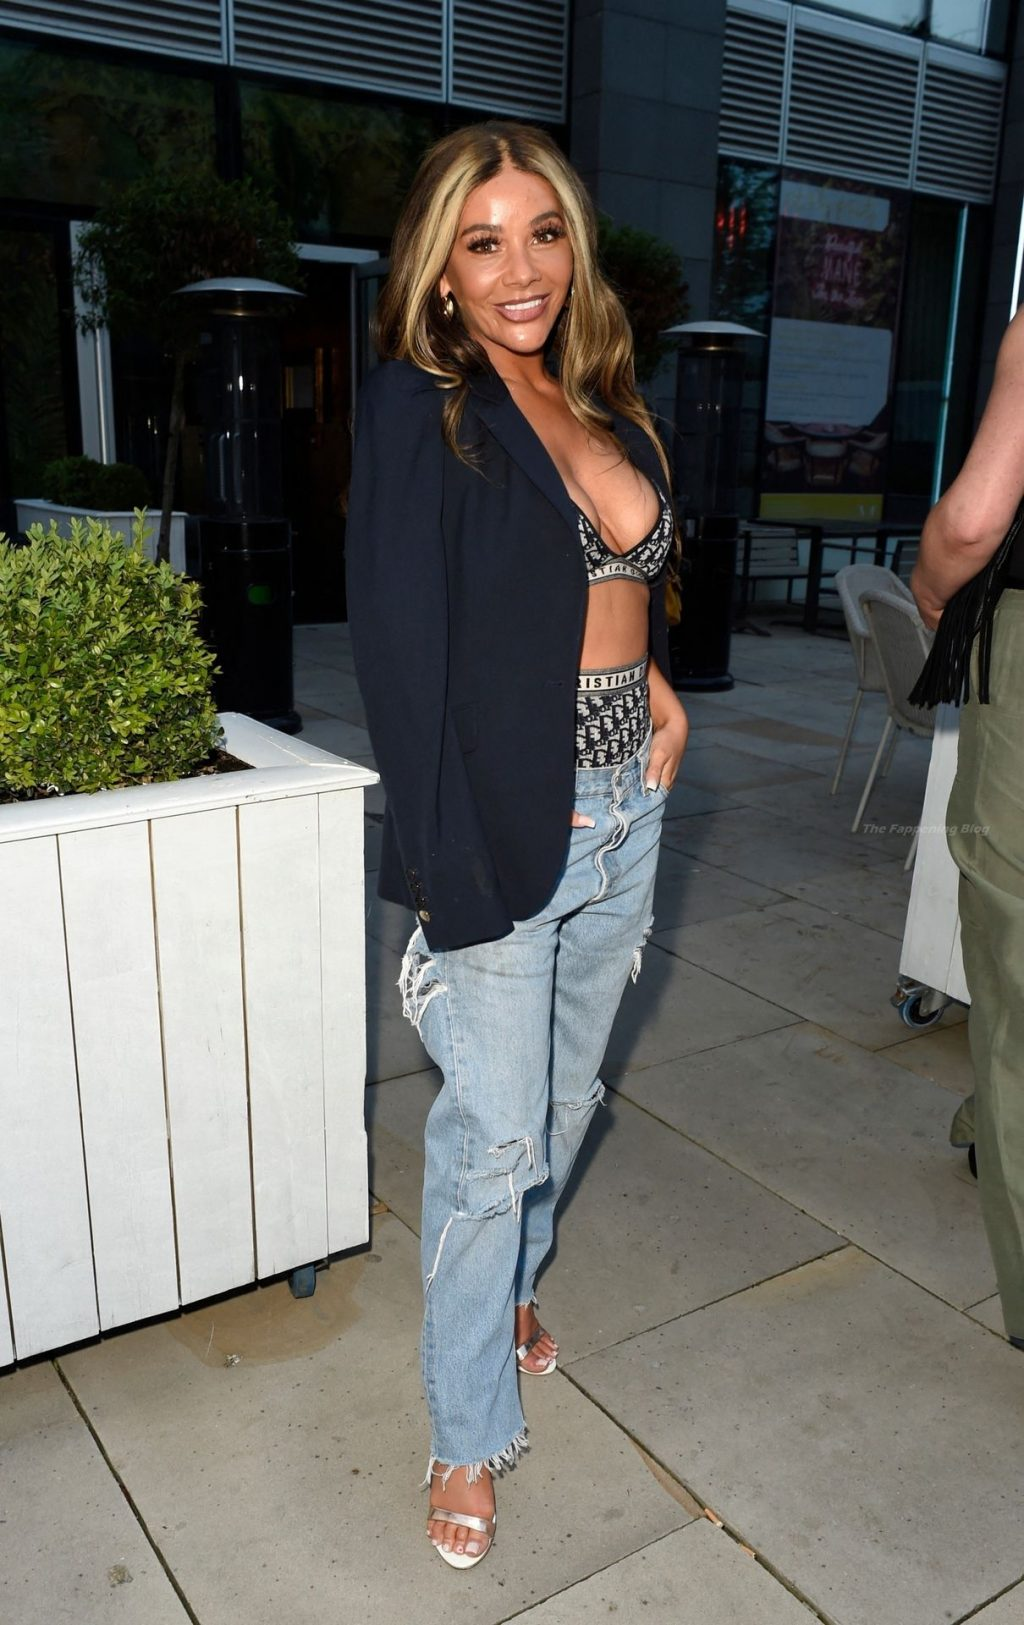 Chelsee Healey's Girls Night Out at Menagerie (75 Photos)